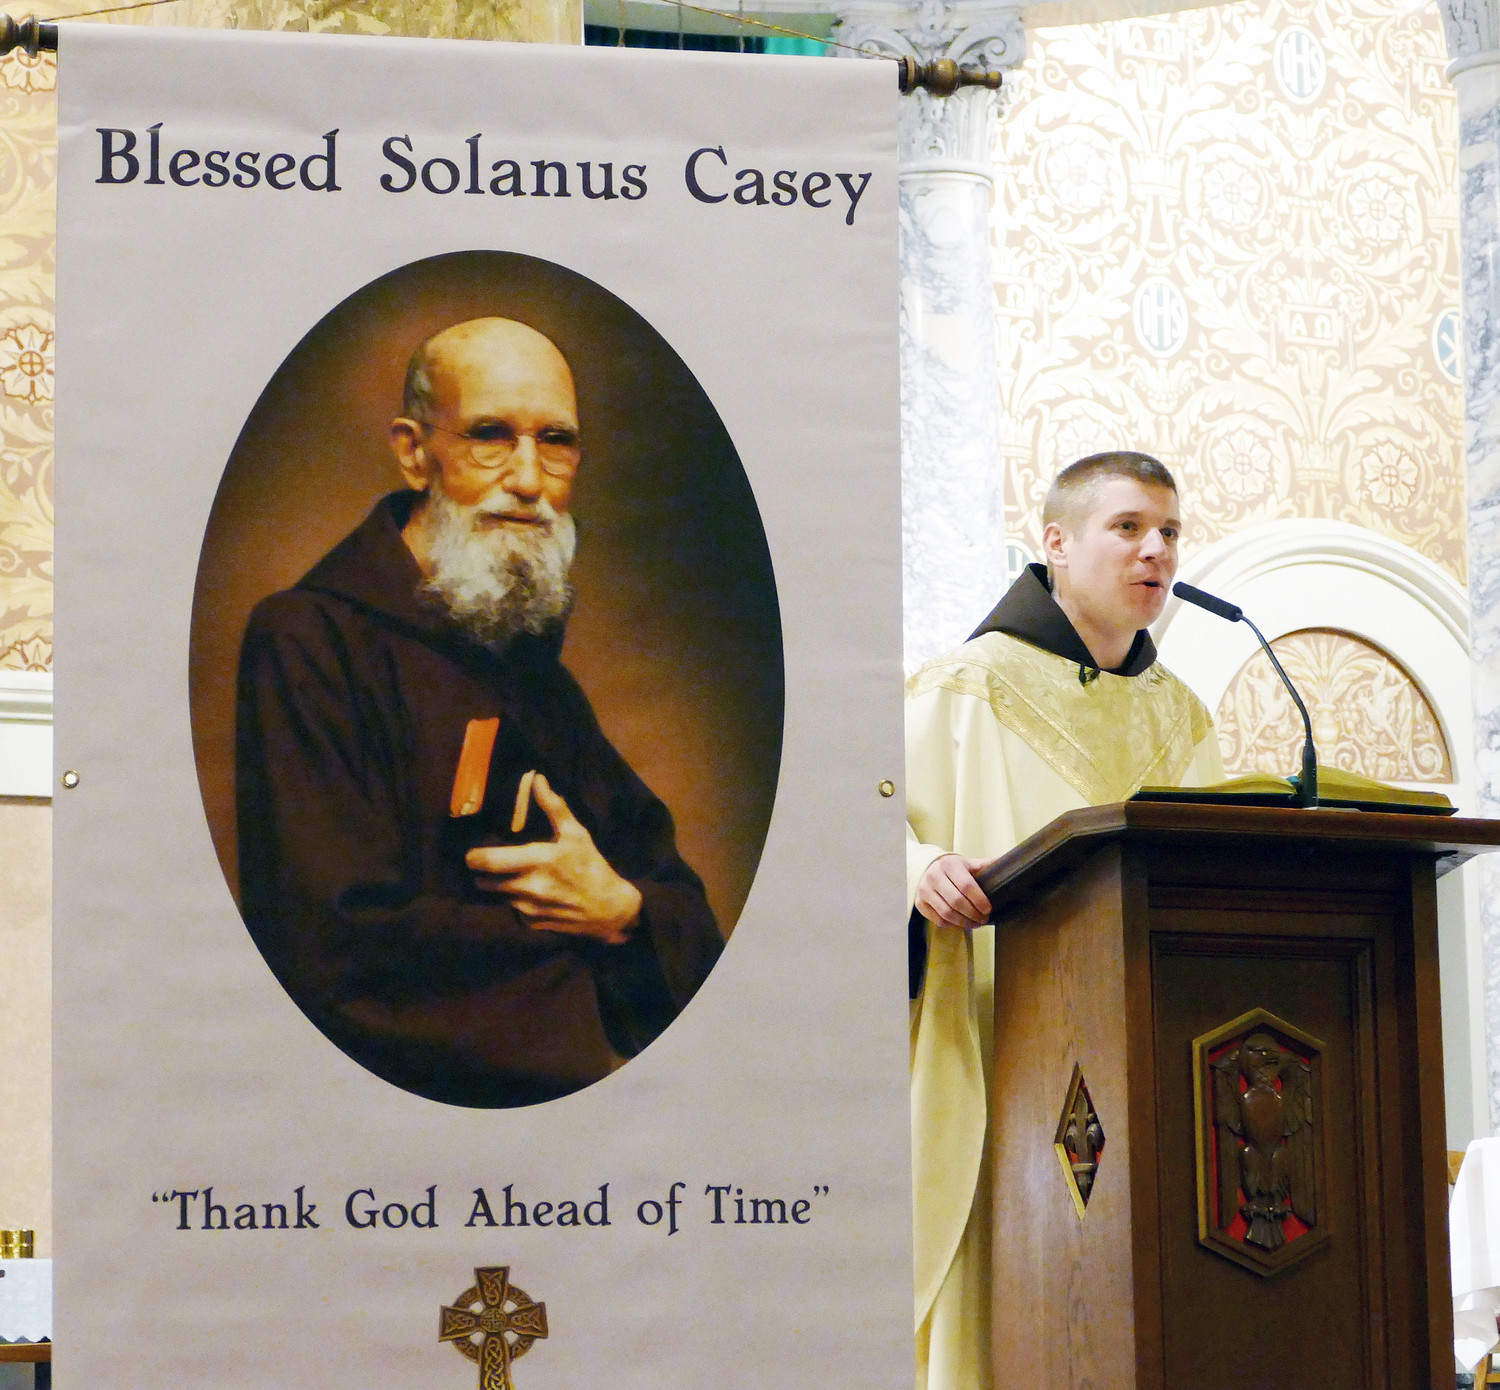 Father Matthew Janeczko, O.F.M. Cap., pastor of Sacred Heart parish in Yonkers, preaches his homily at a Vigil Mass honoring Blessed Solanus Casey in the church where the friar served for 14 years in the early part of the 20th century.